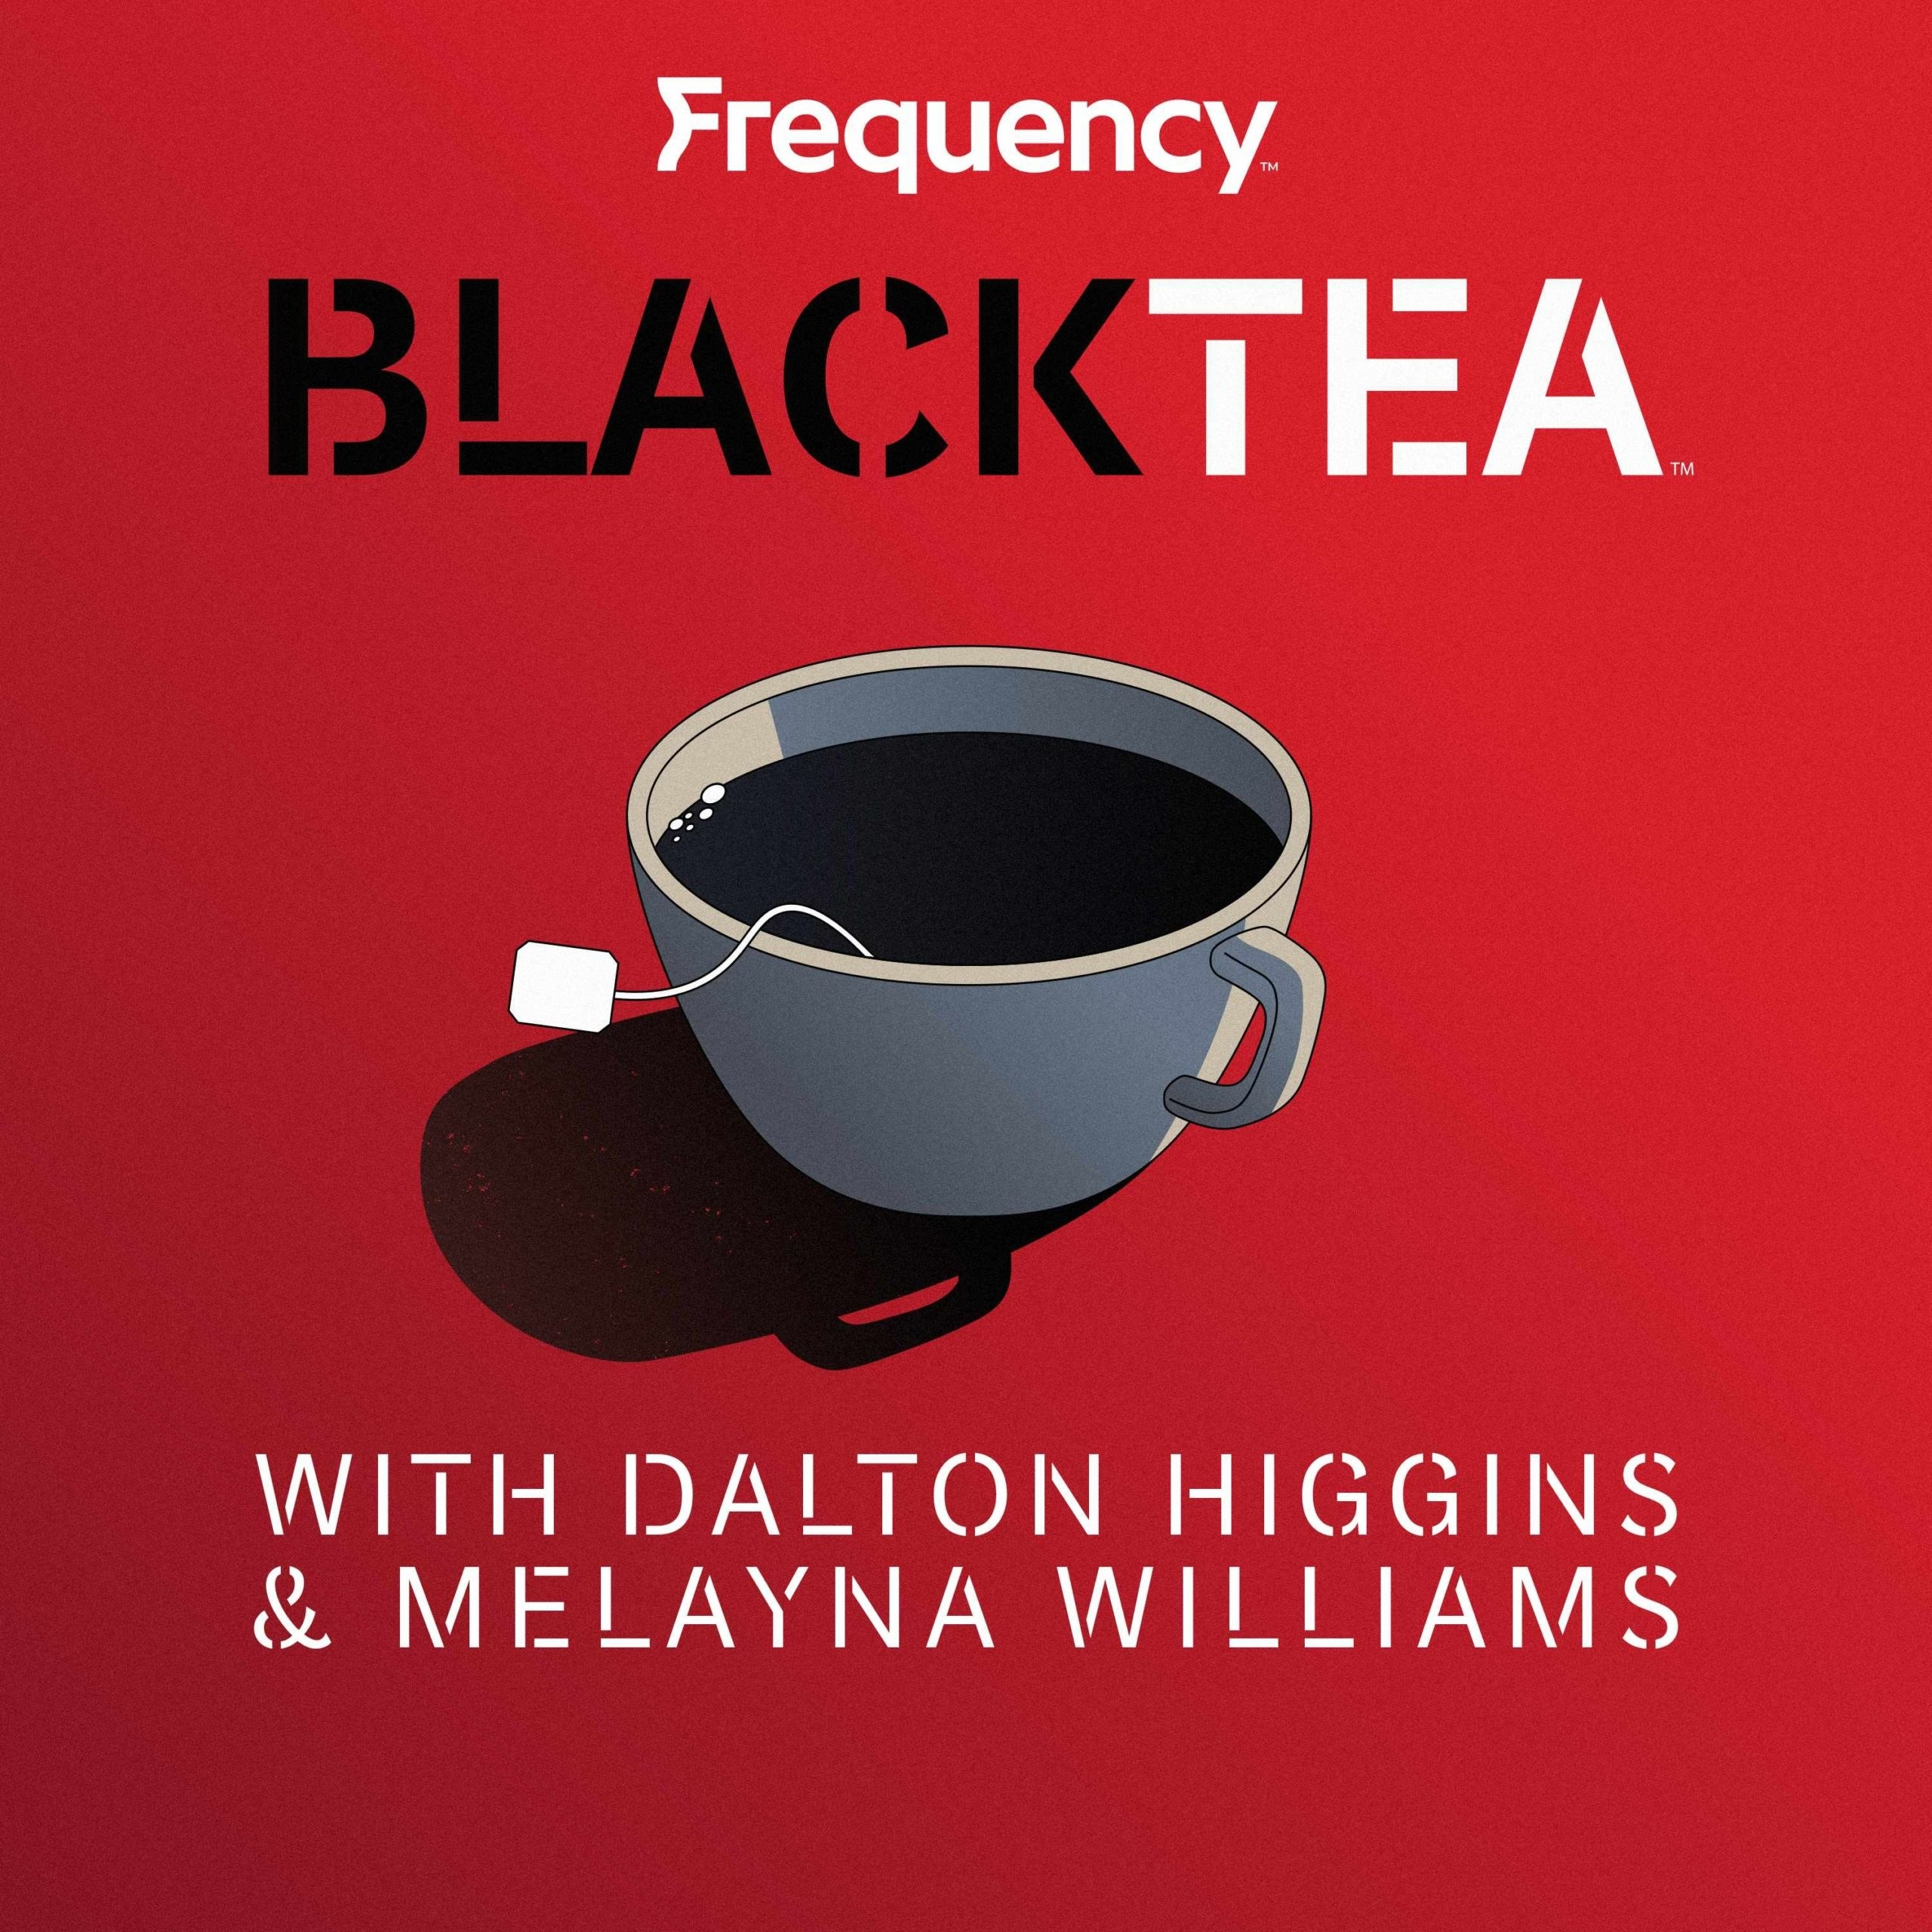 An illustration of a cup of tea with the title Black Tea above it